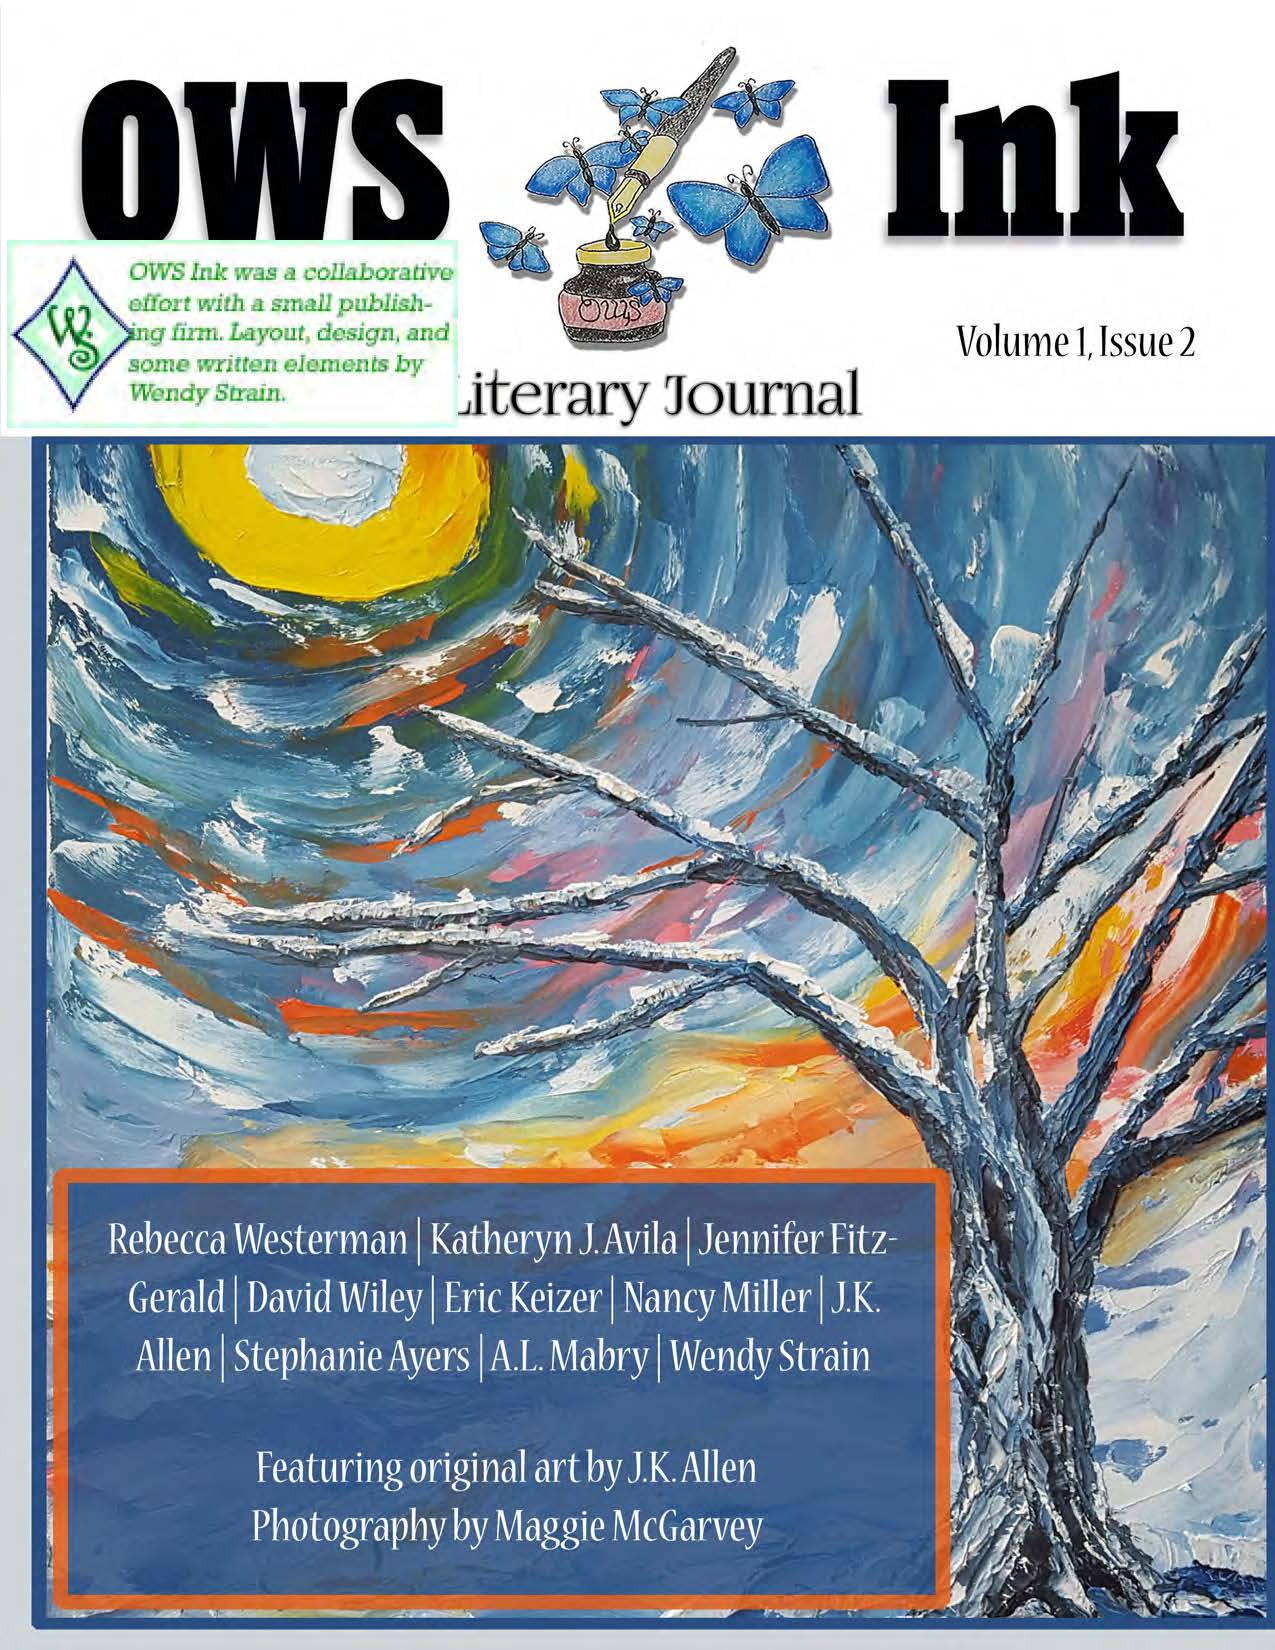 OWS Summer literary journal